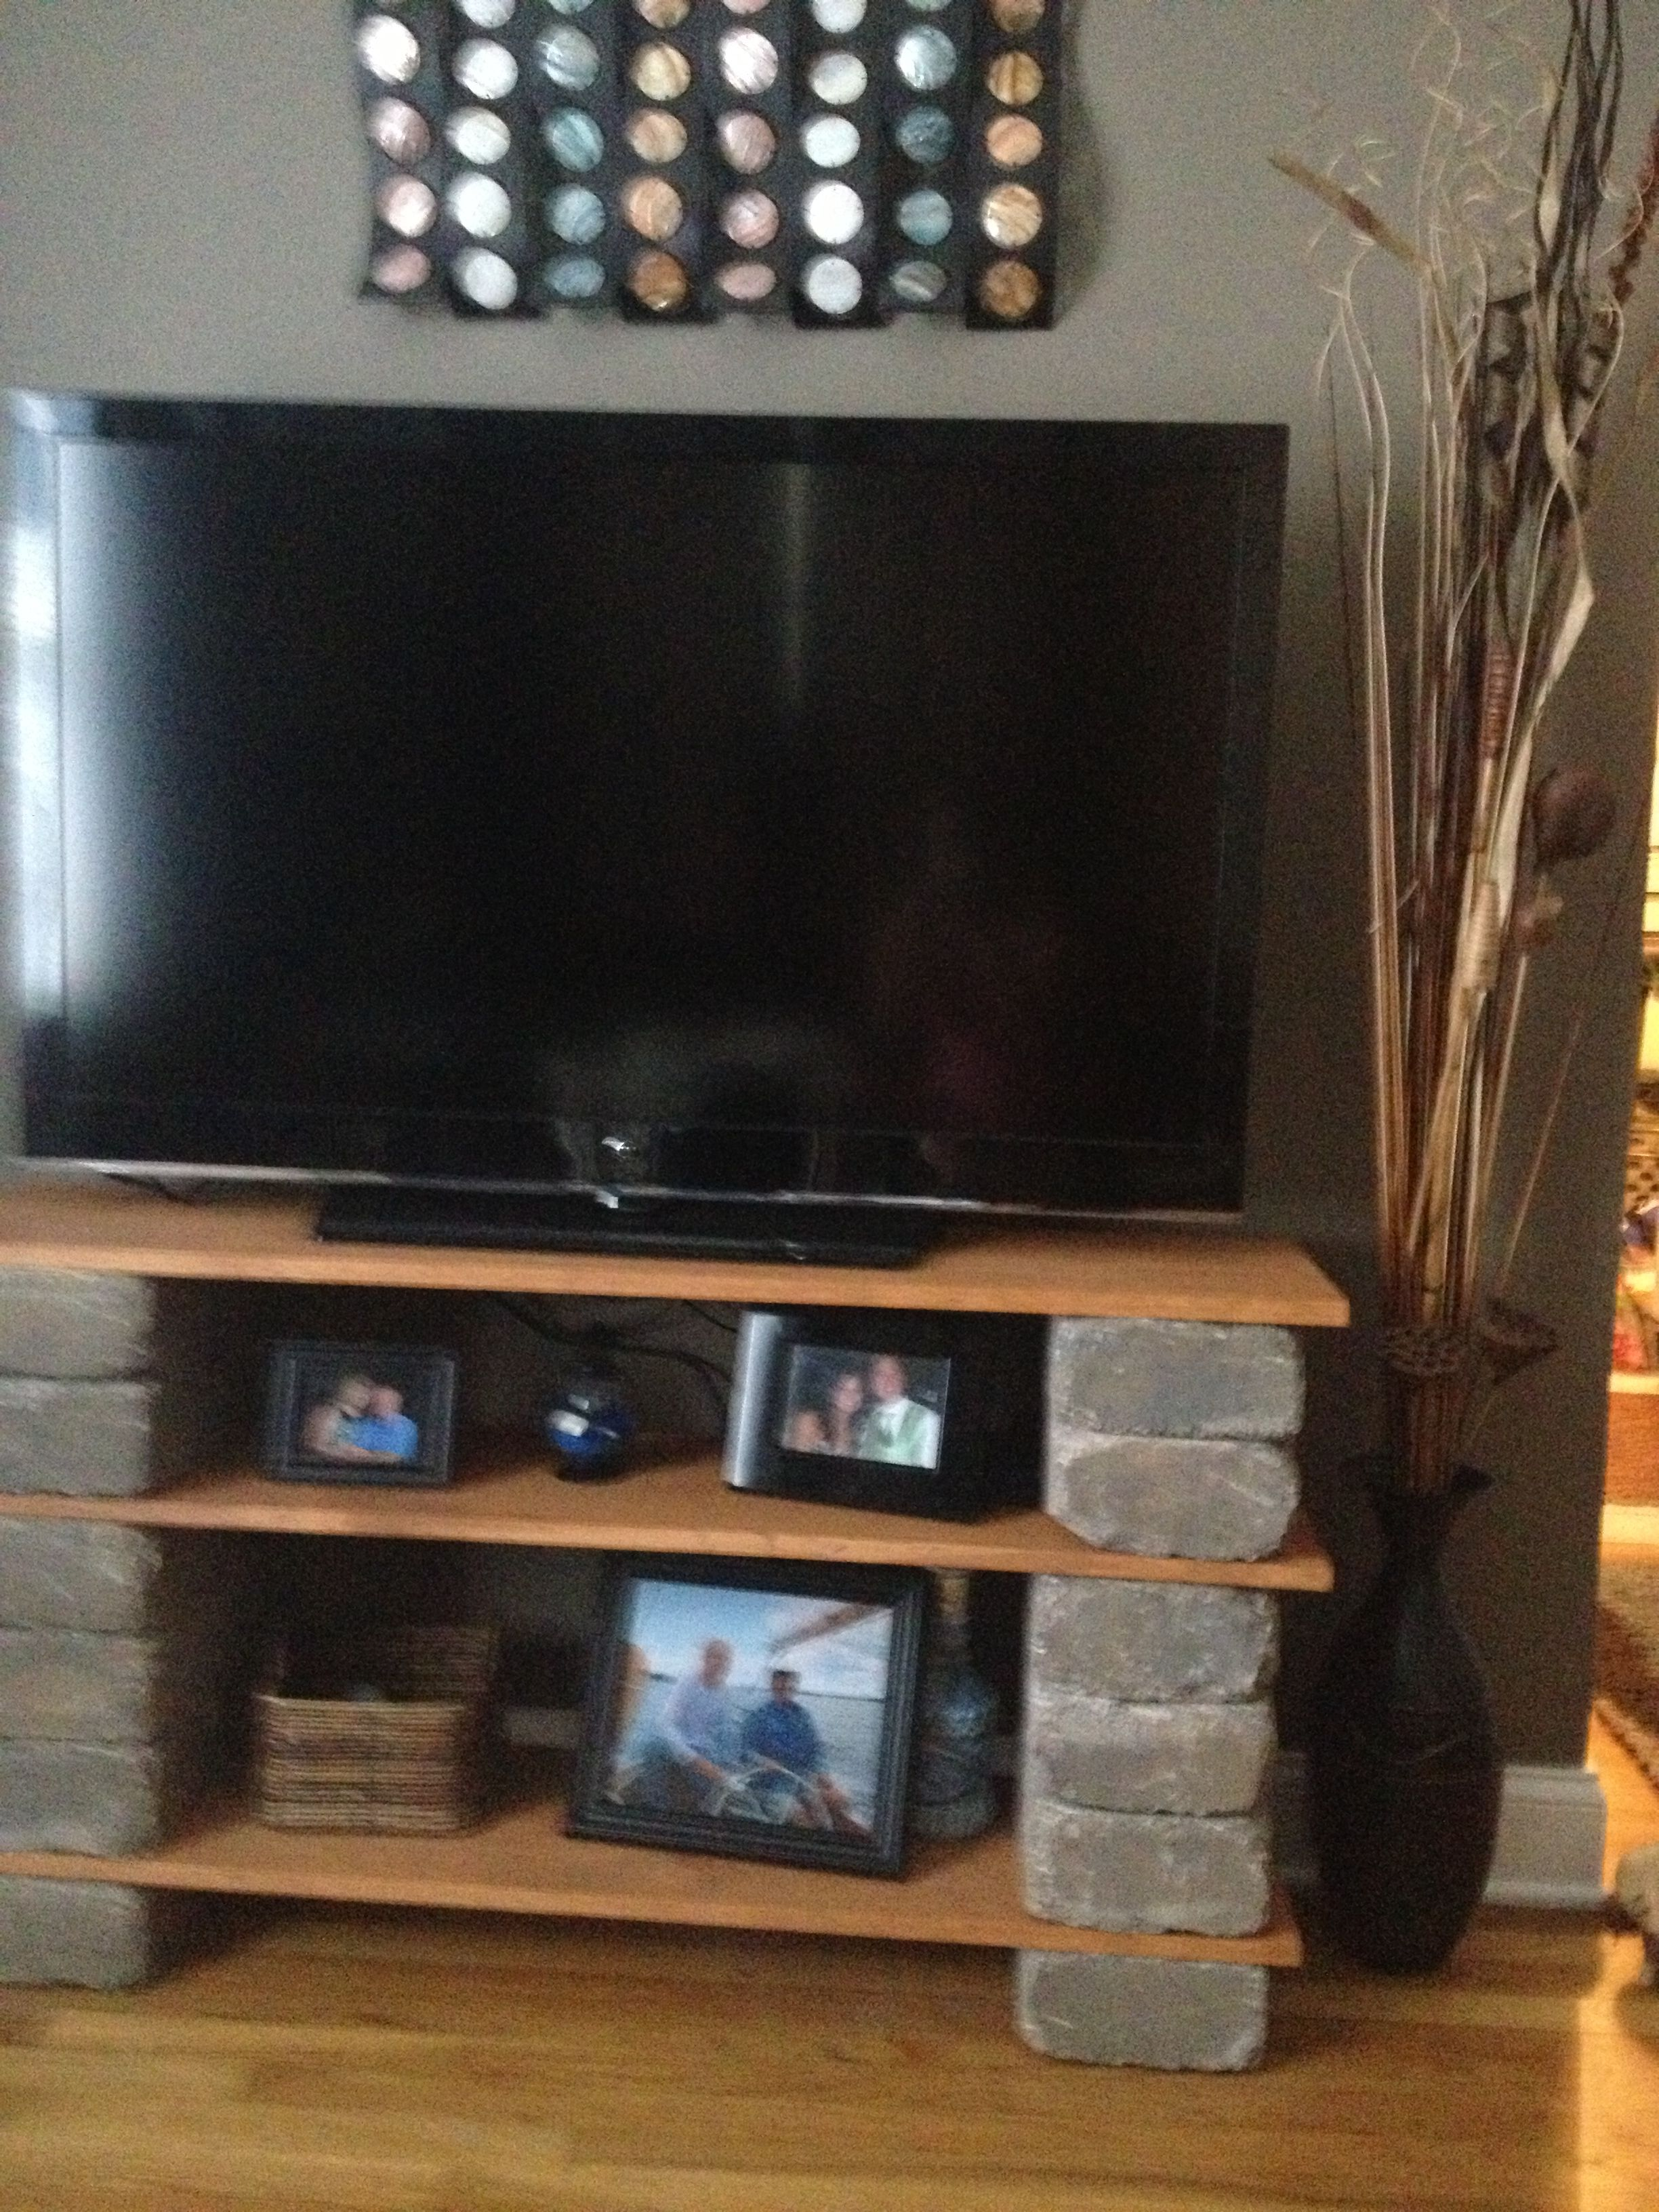 I Love My Diy Tv Stand With Landscaping Blocks And Stained